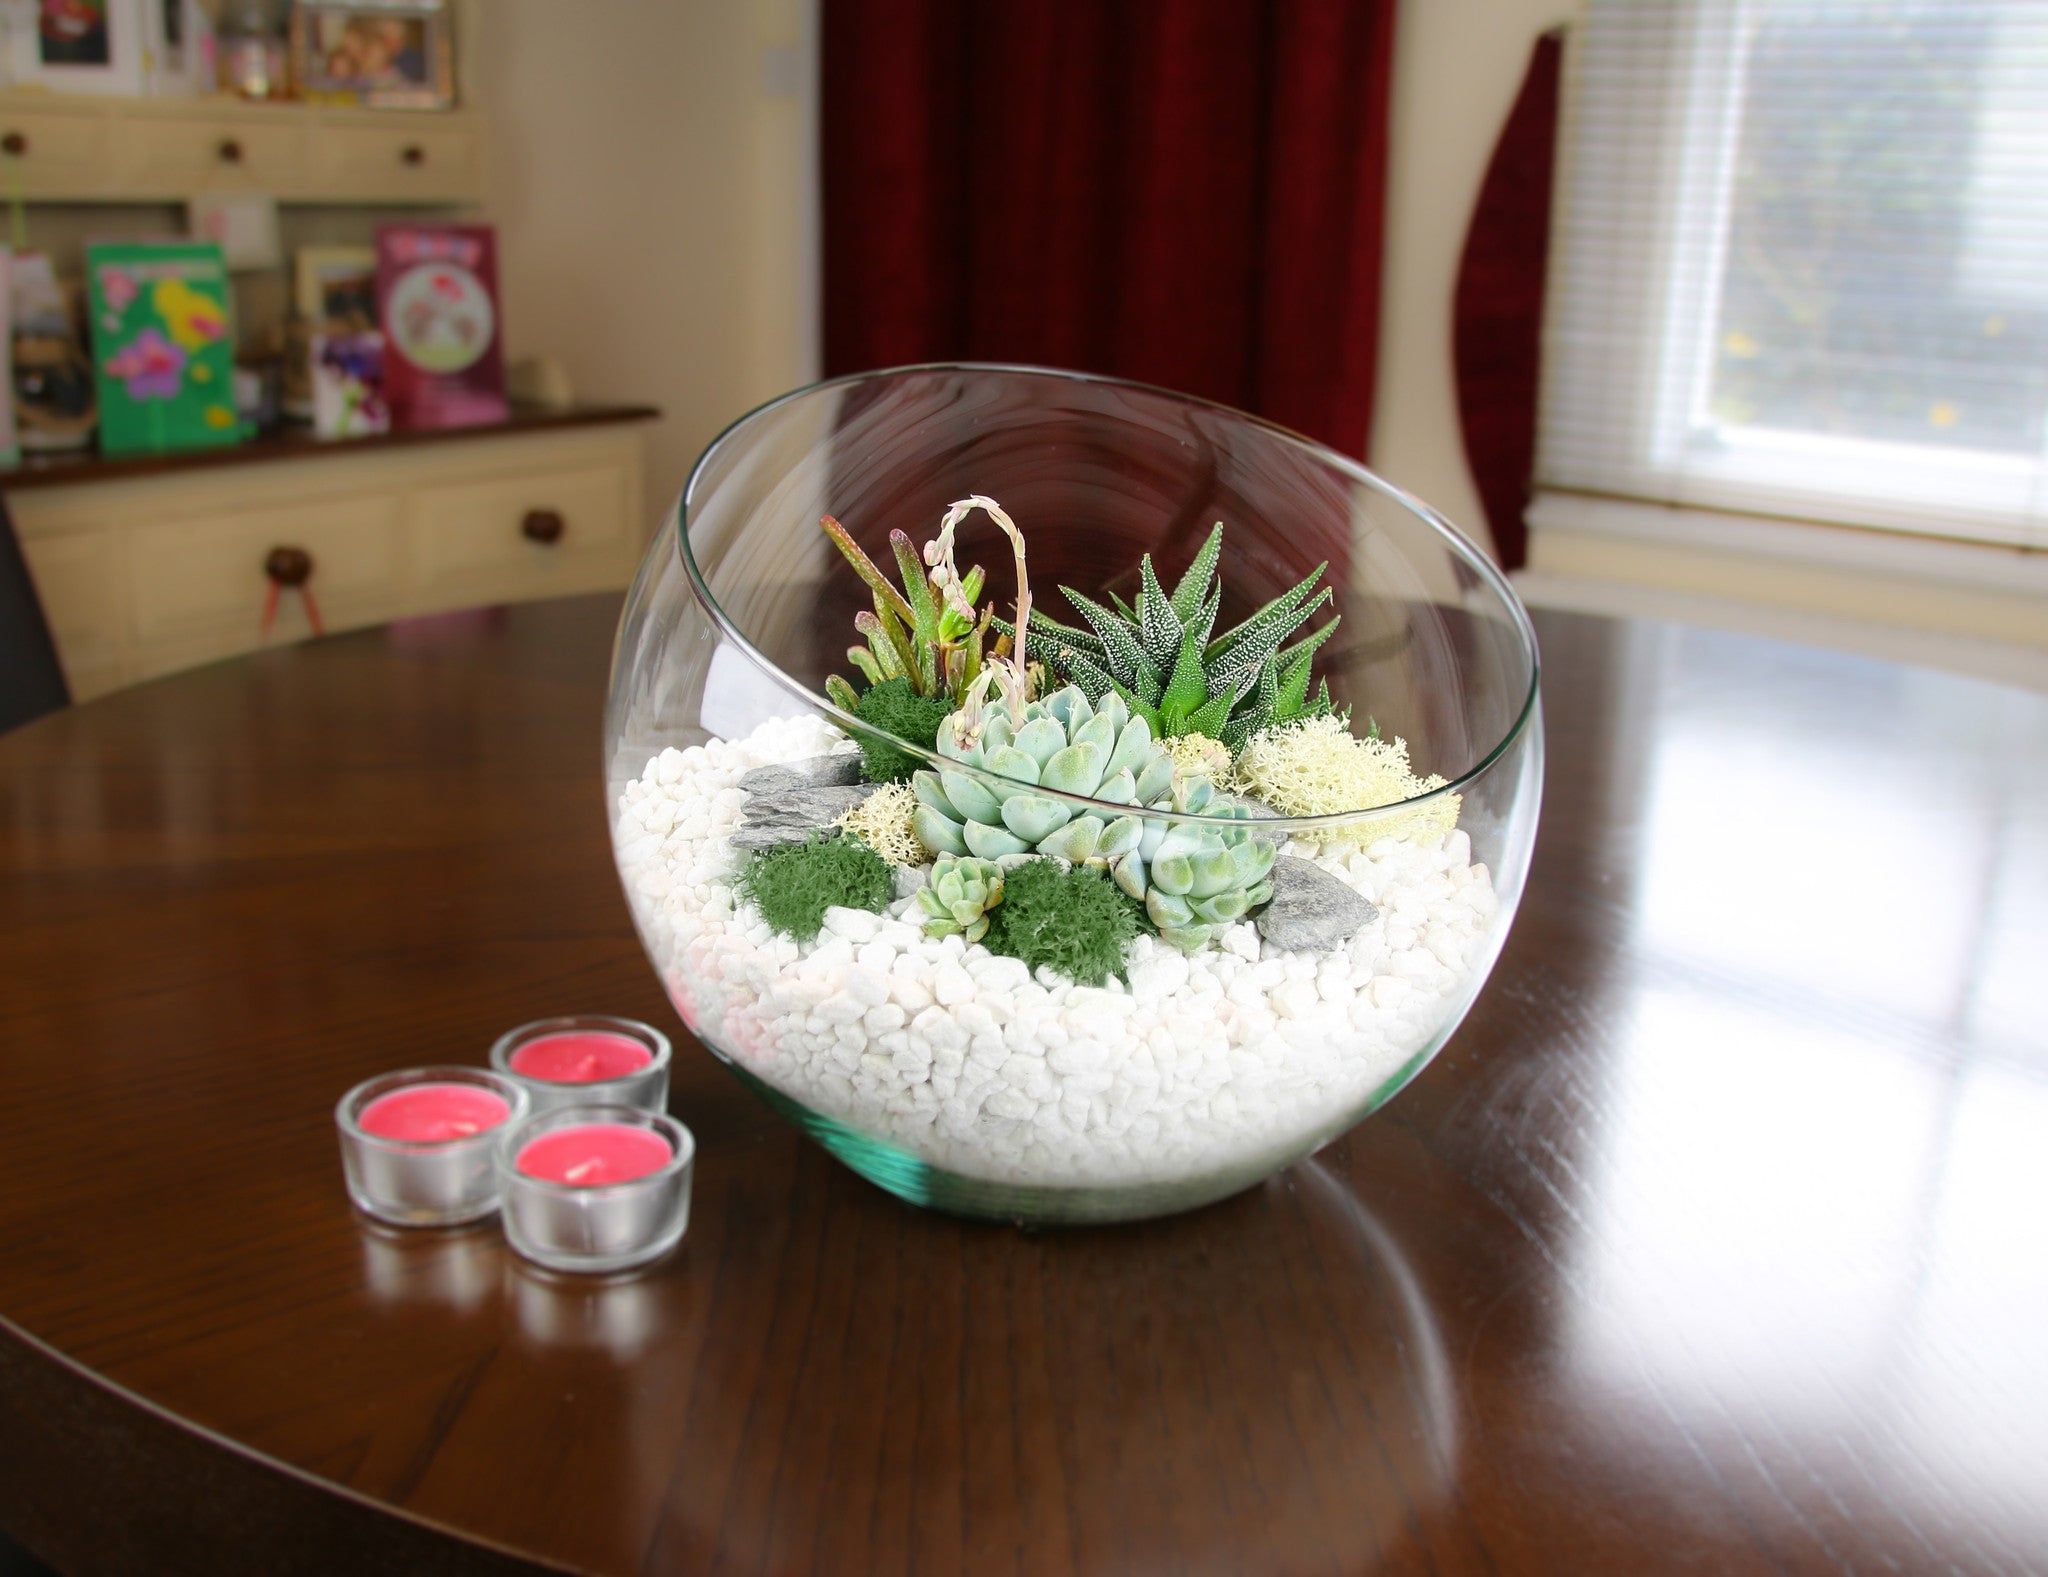 Large Angled Glass Bowl Terrarium Kit With Succulent Plants Home Accessory Gift The Art Of Succulents